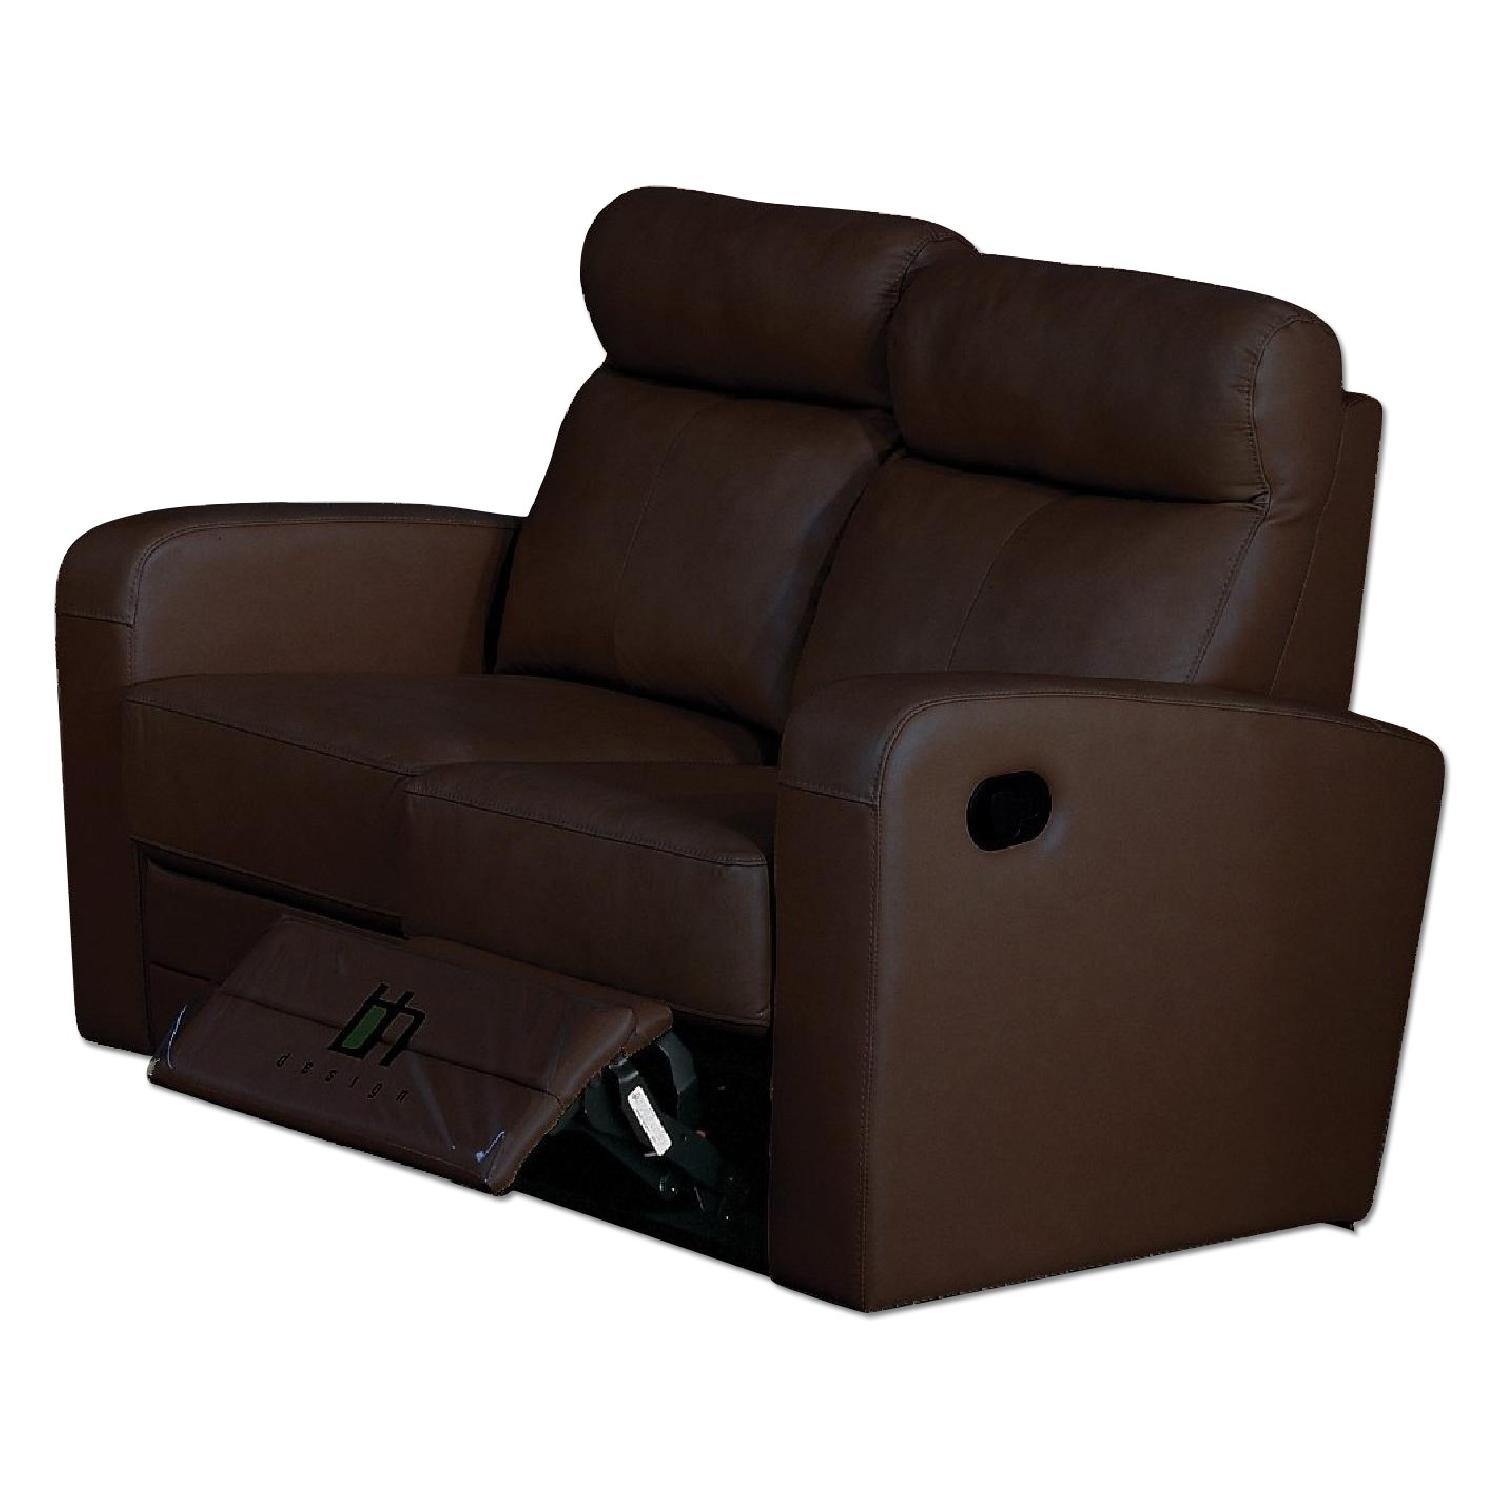 Terrific Apartment Size Recliner Loveseat In Brown Top Grain Leather Gmtry Best Dining Table And Chair Ideas Images Gmtryco